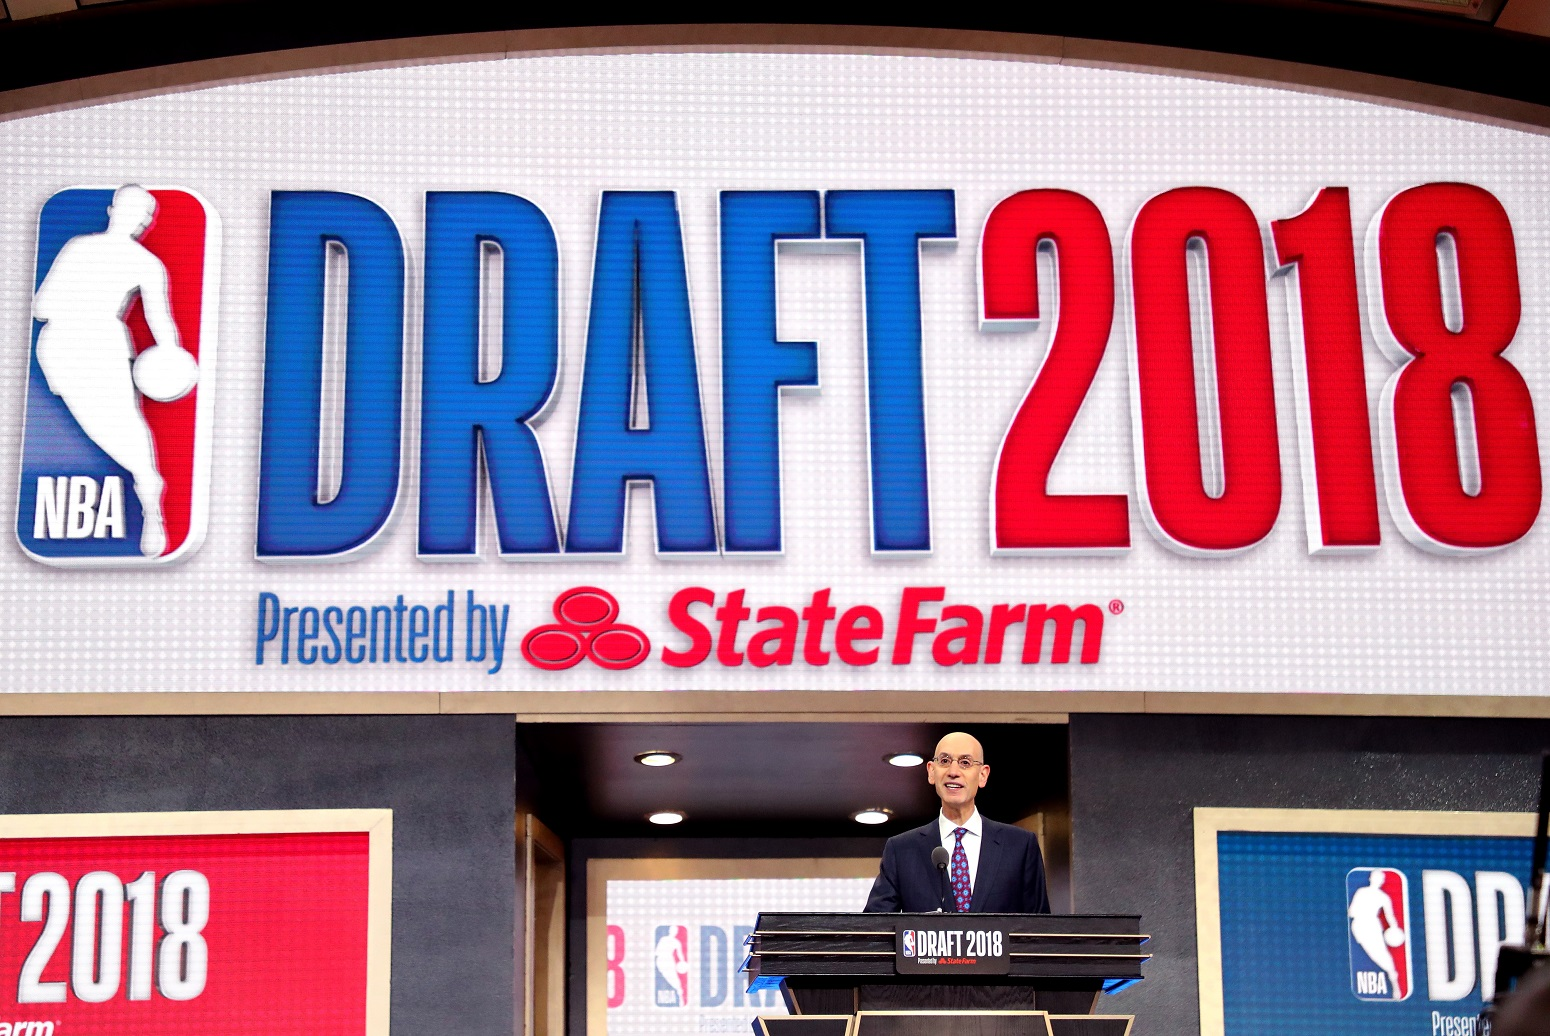 What Are the Odds of Being Drafted into the NBA?